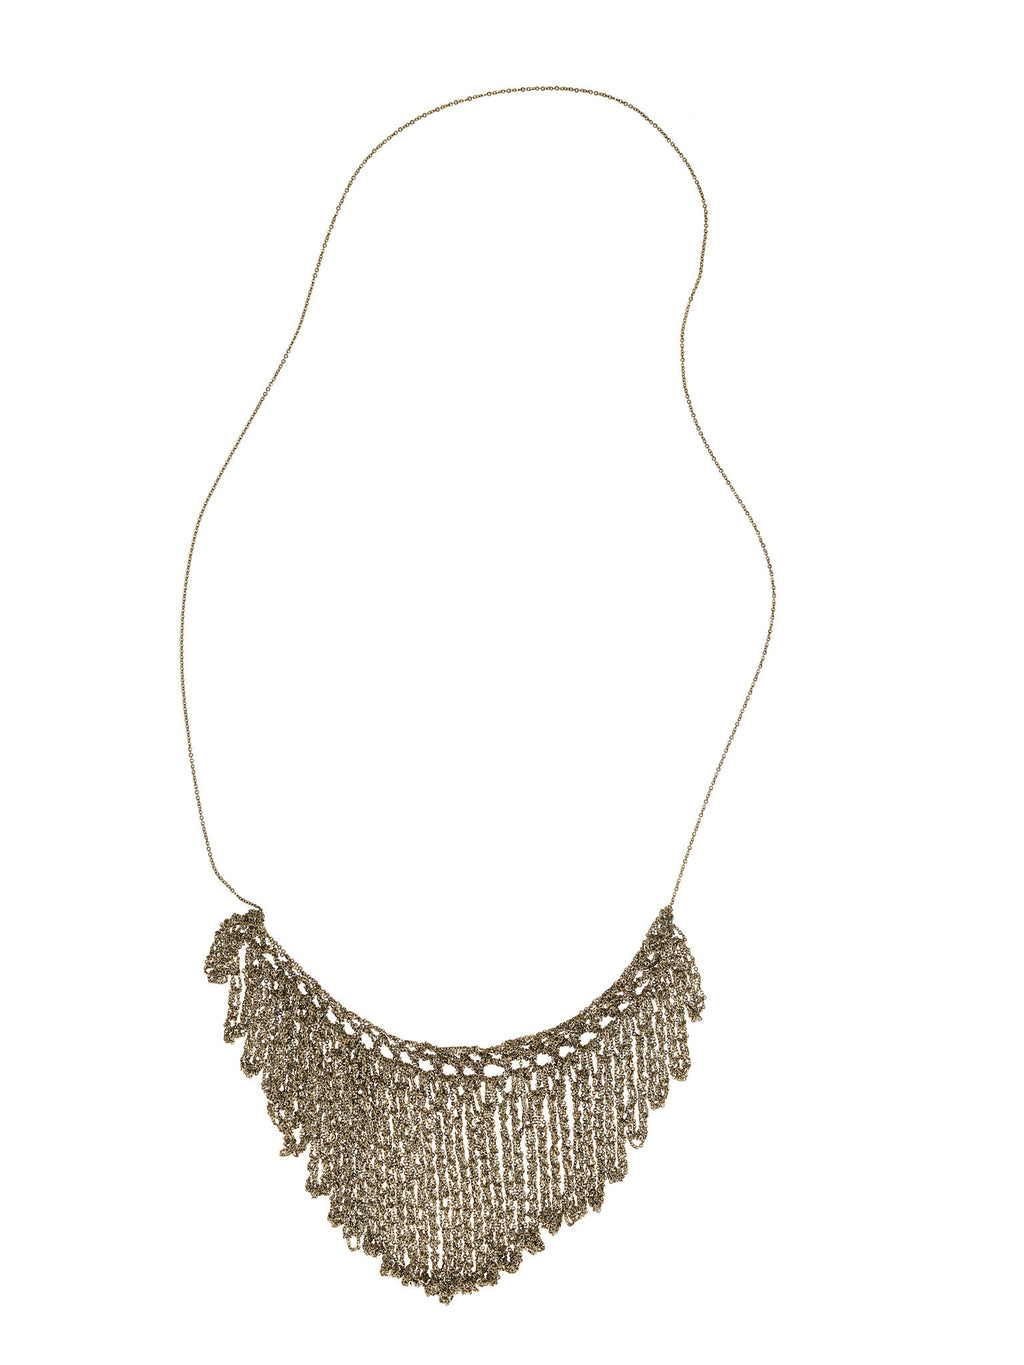 String Fringe Necklace in Haze